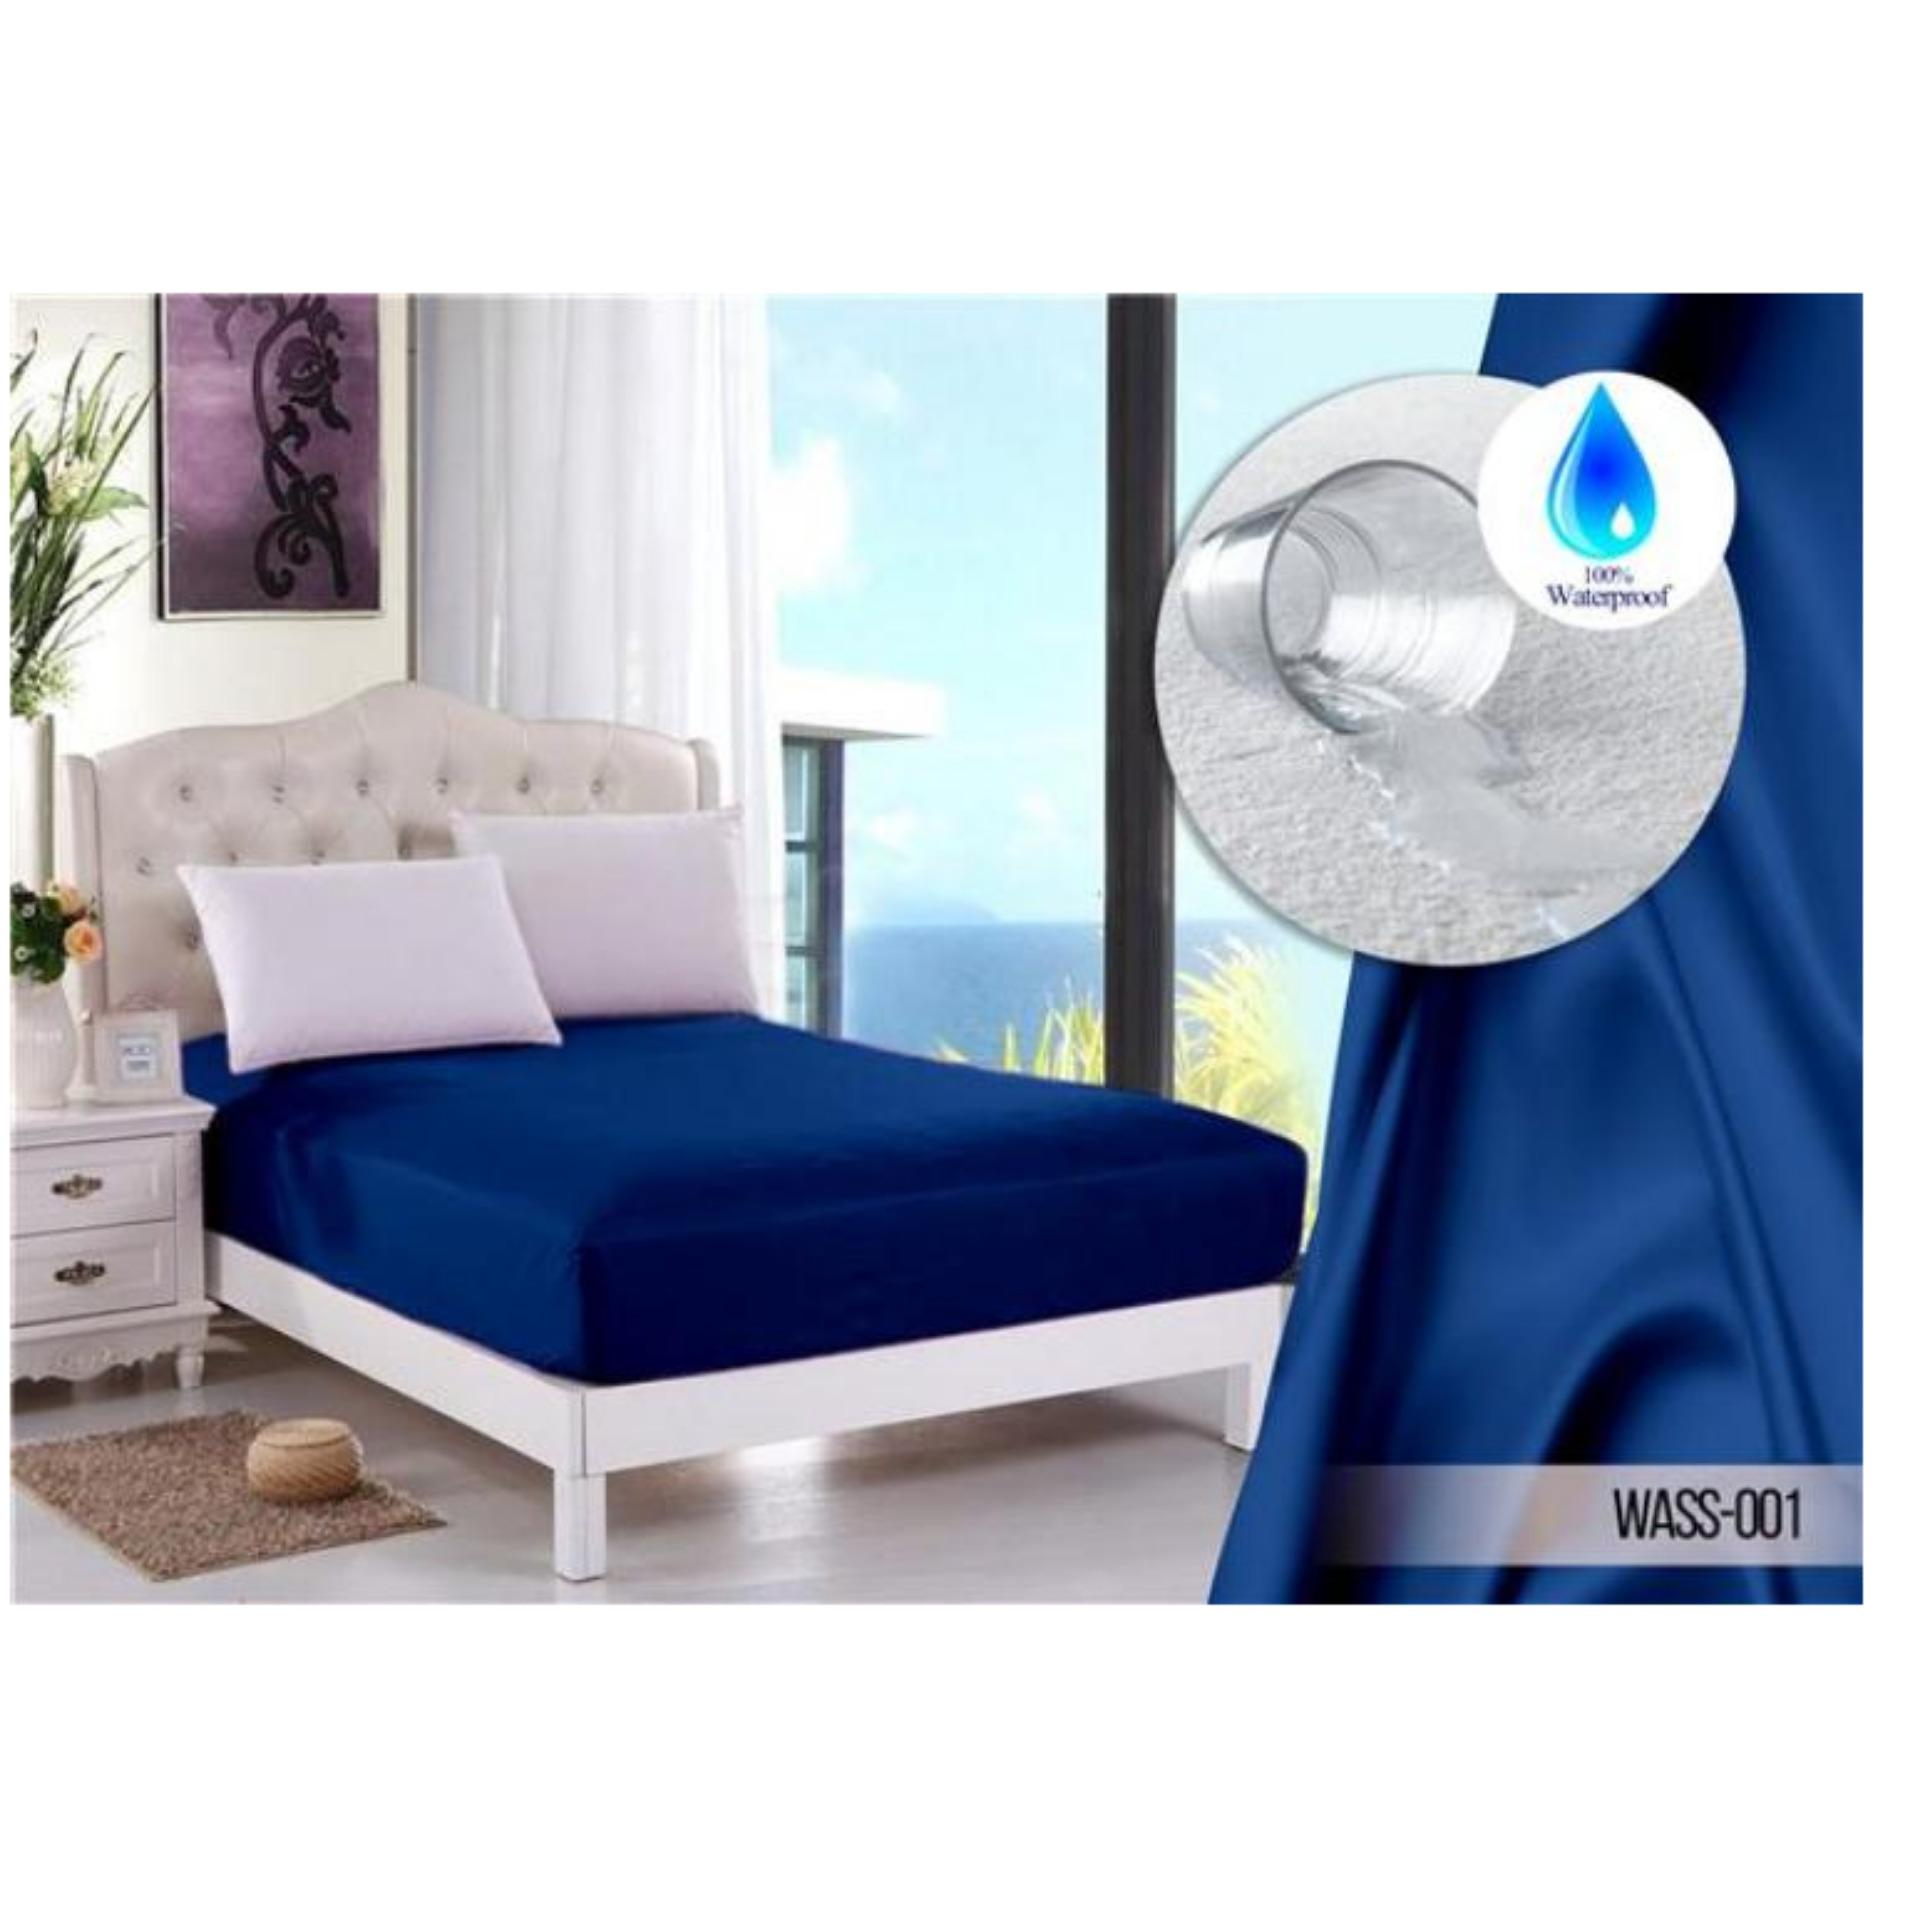 Situs Review Jaxine Sprei Waterproof Anti Air Biru Tua